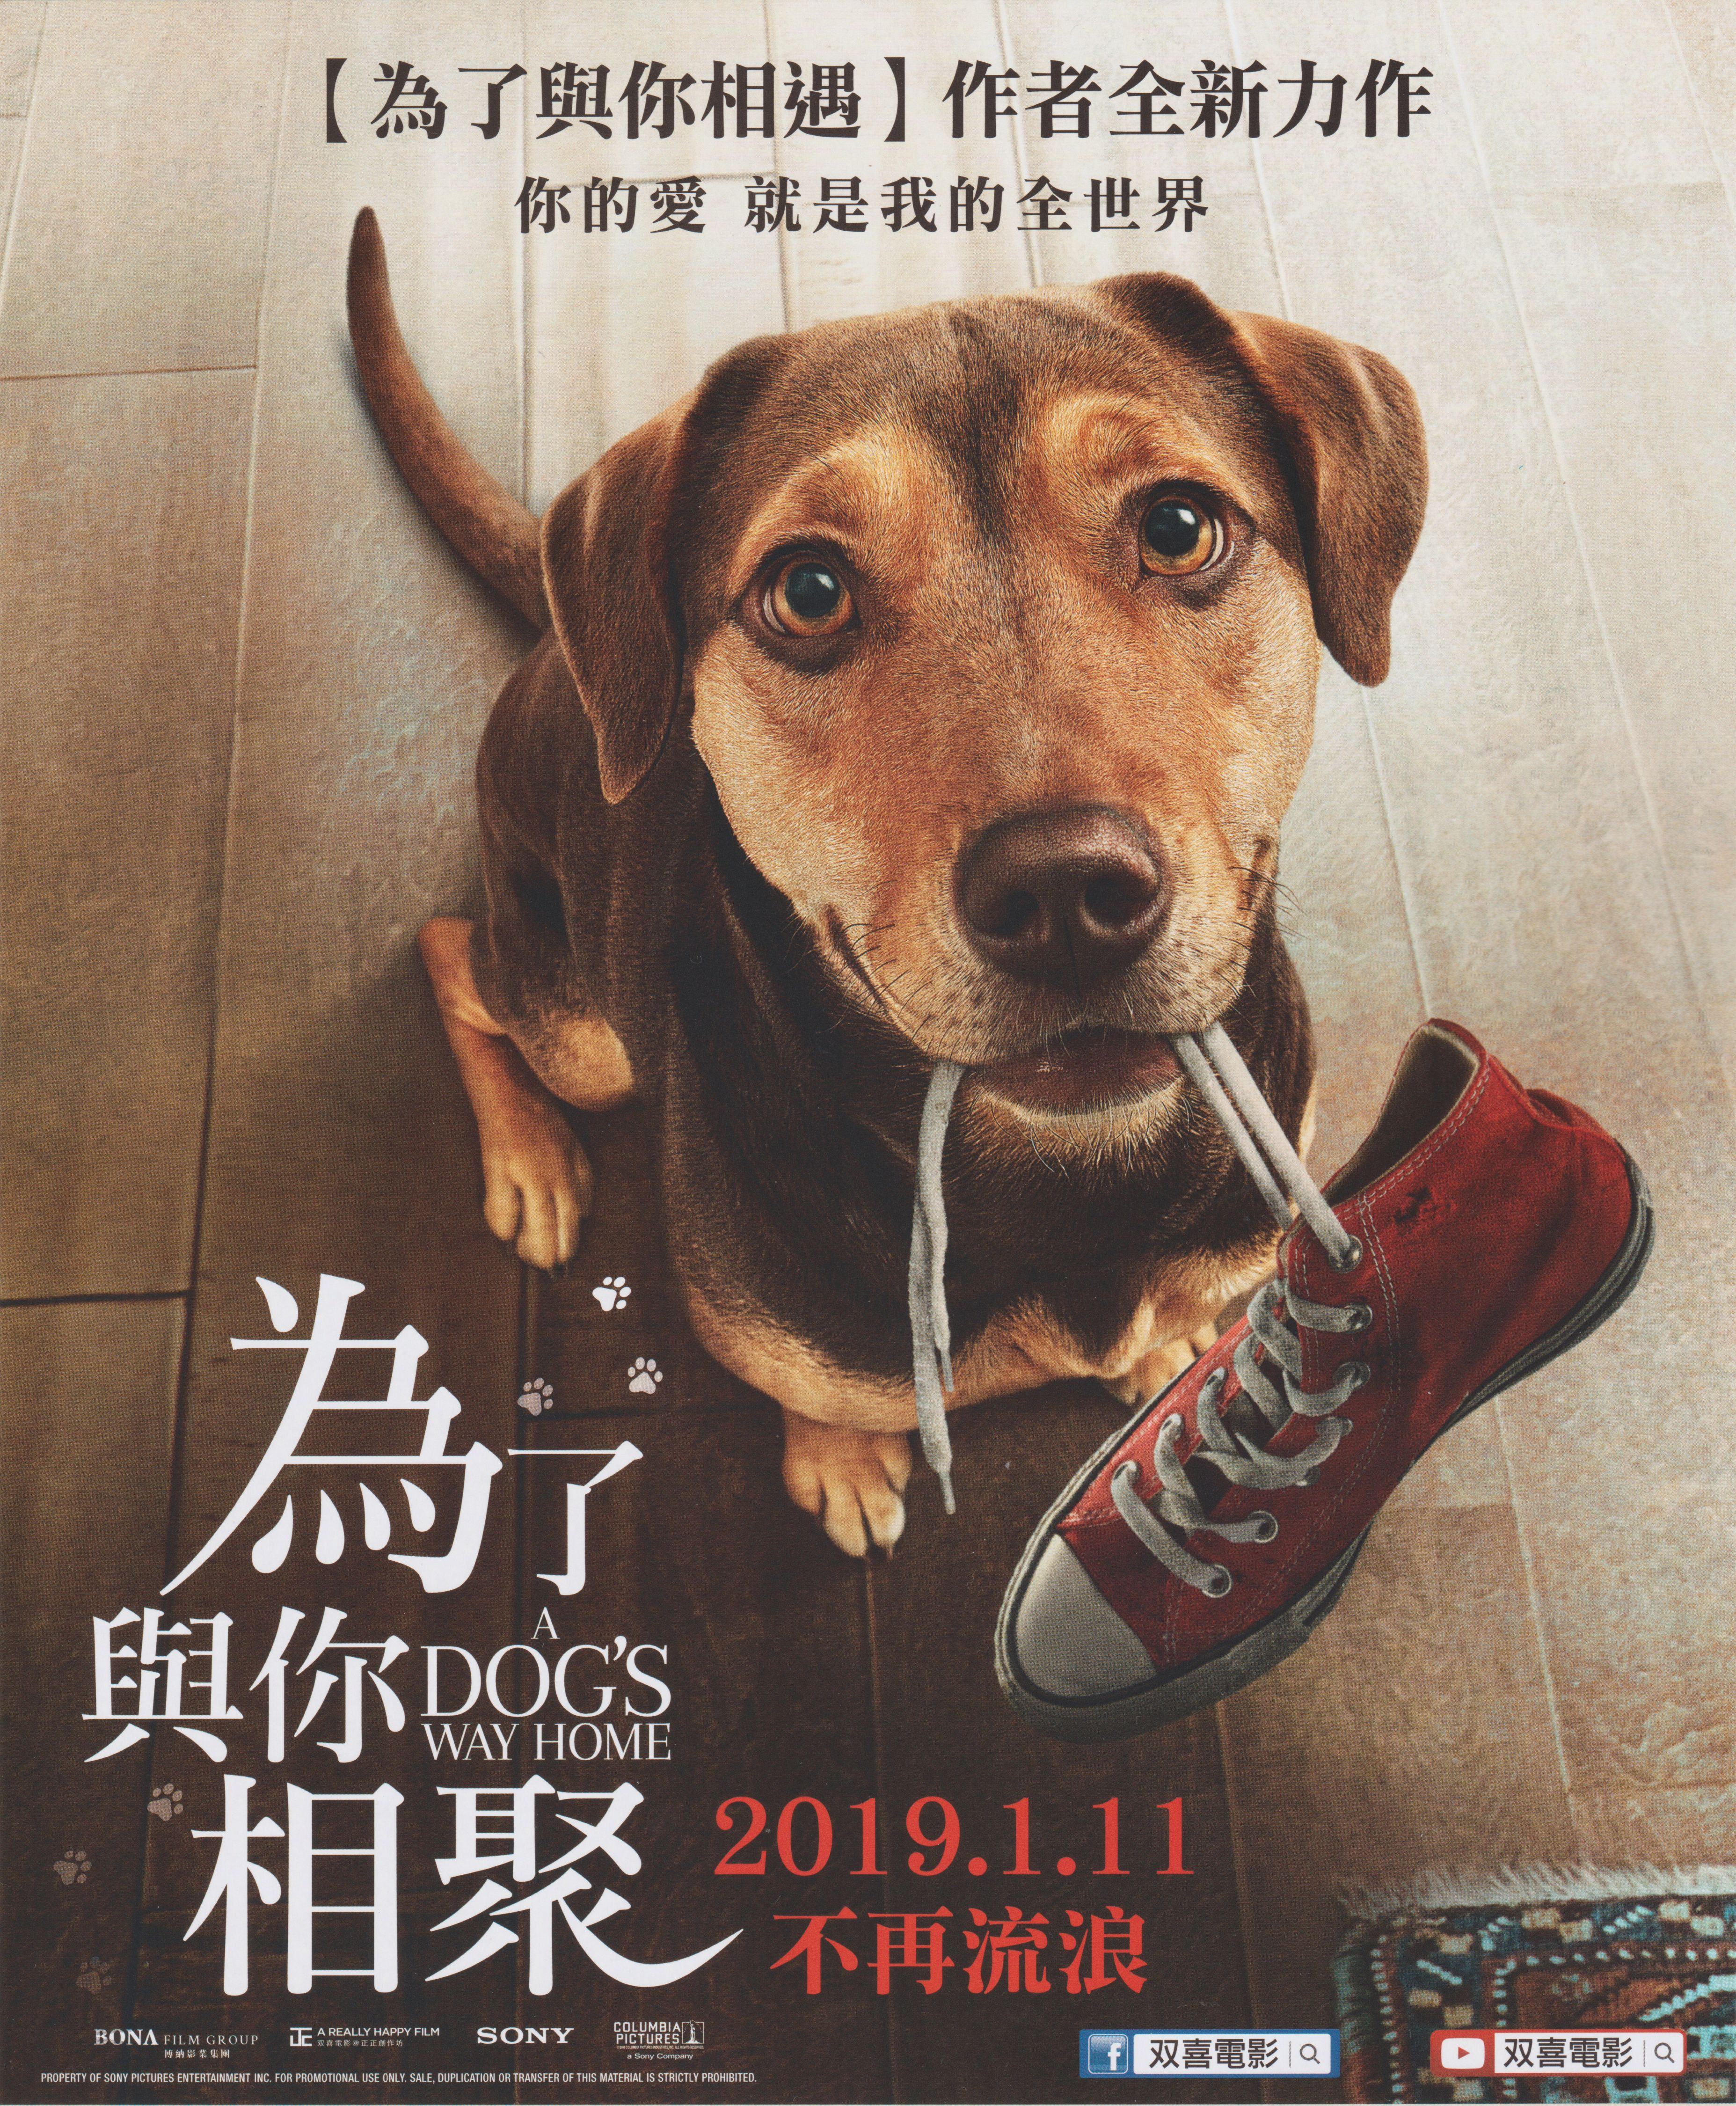 A DOG'S WAY HOME (為了與你相聚) (Issue Date 2019.1.11) Dogs